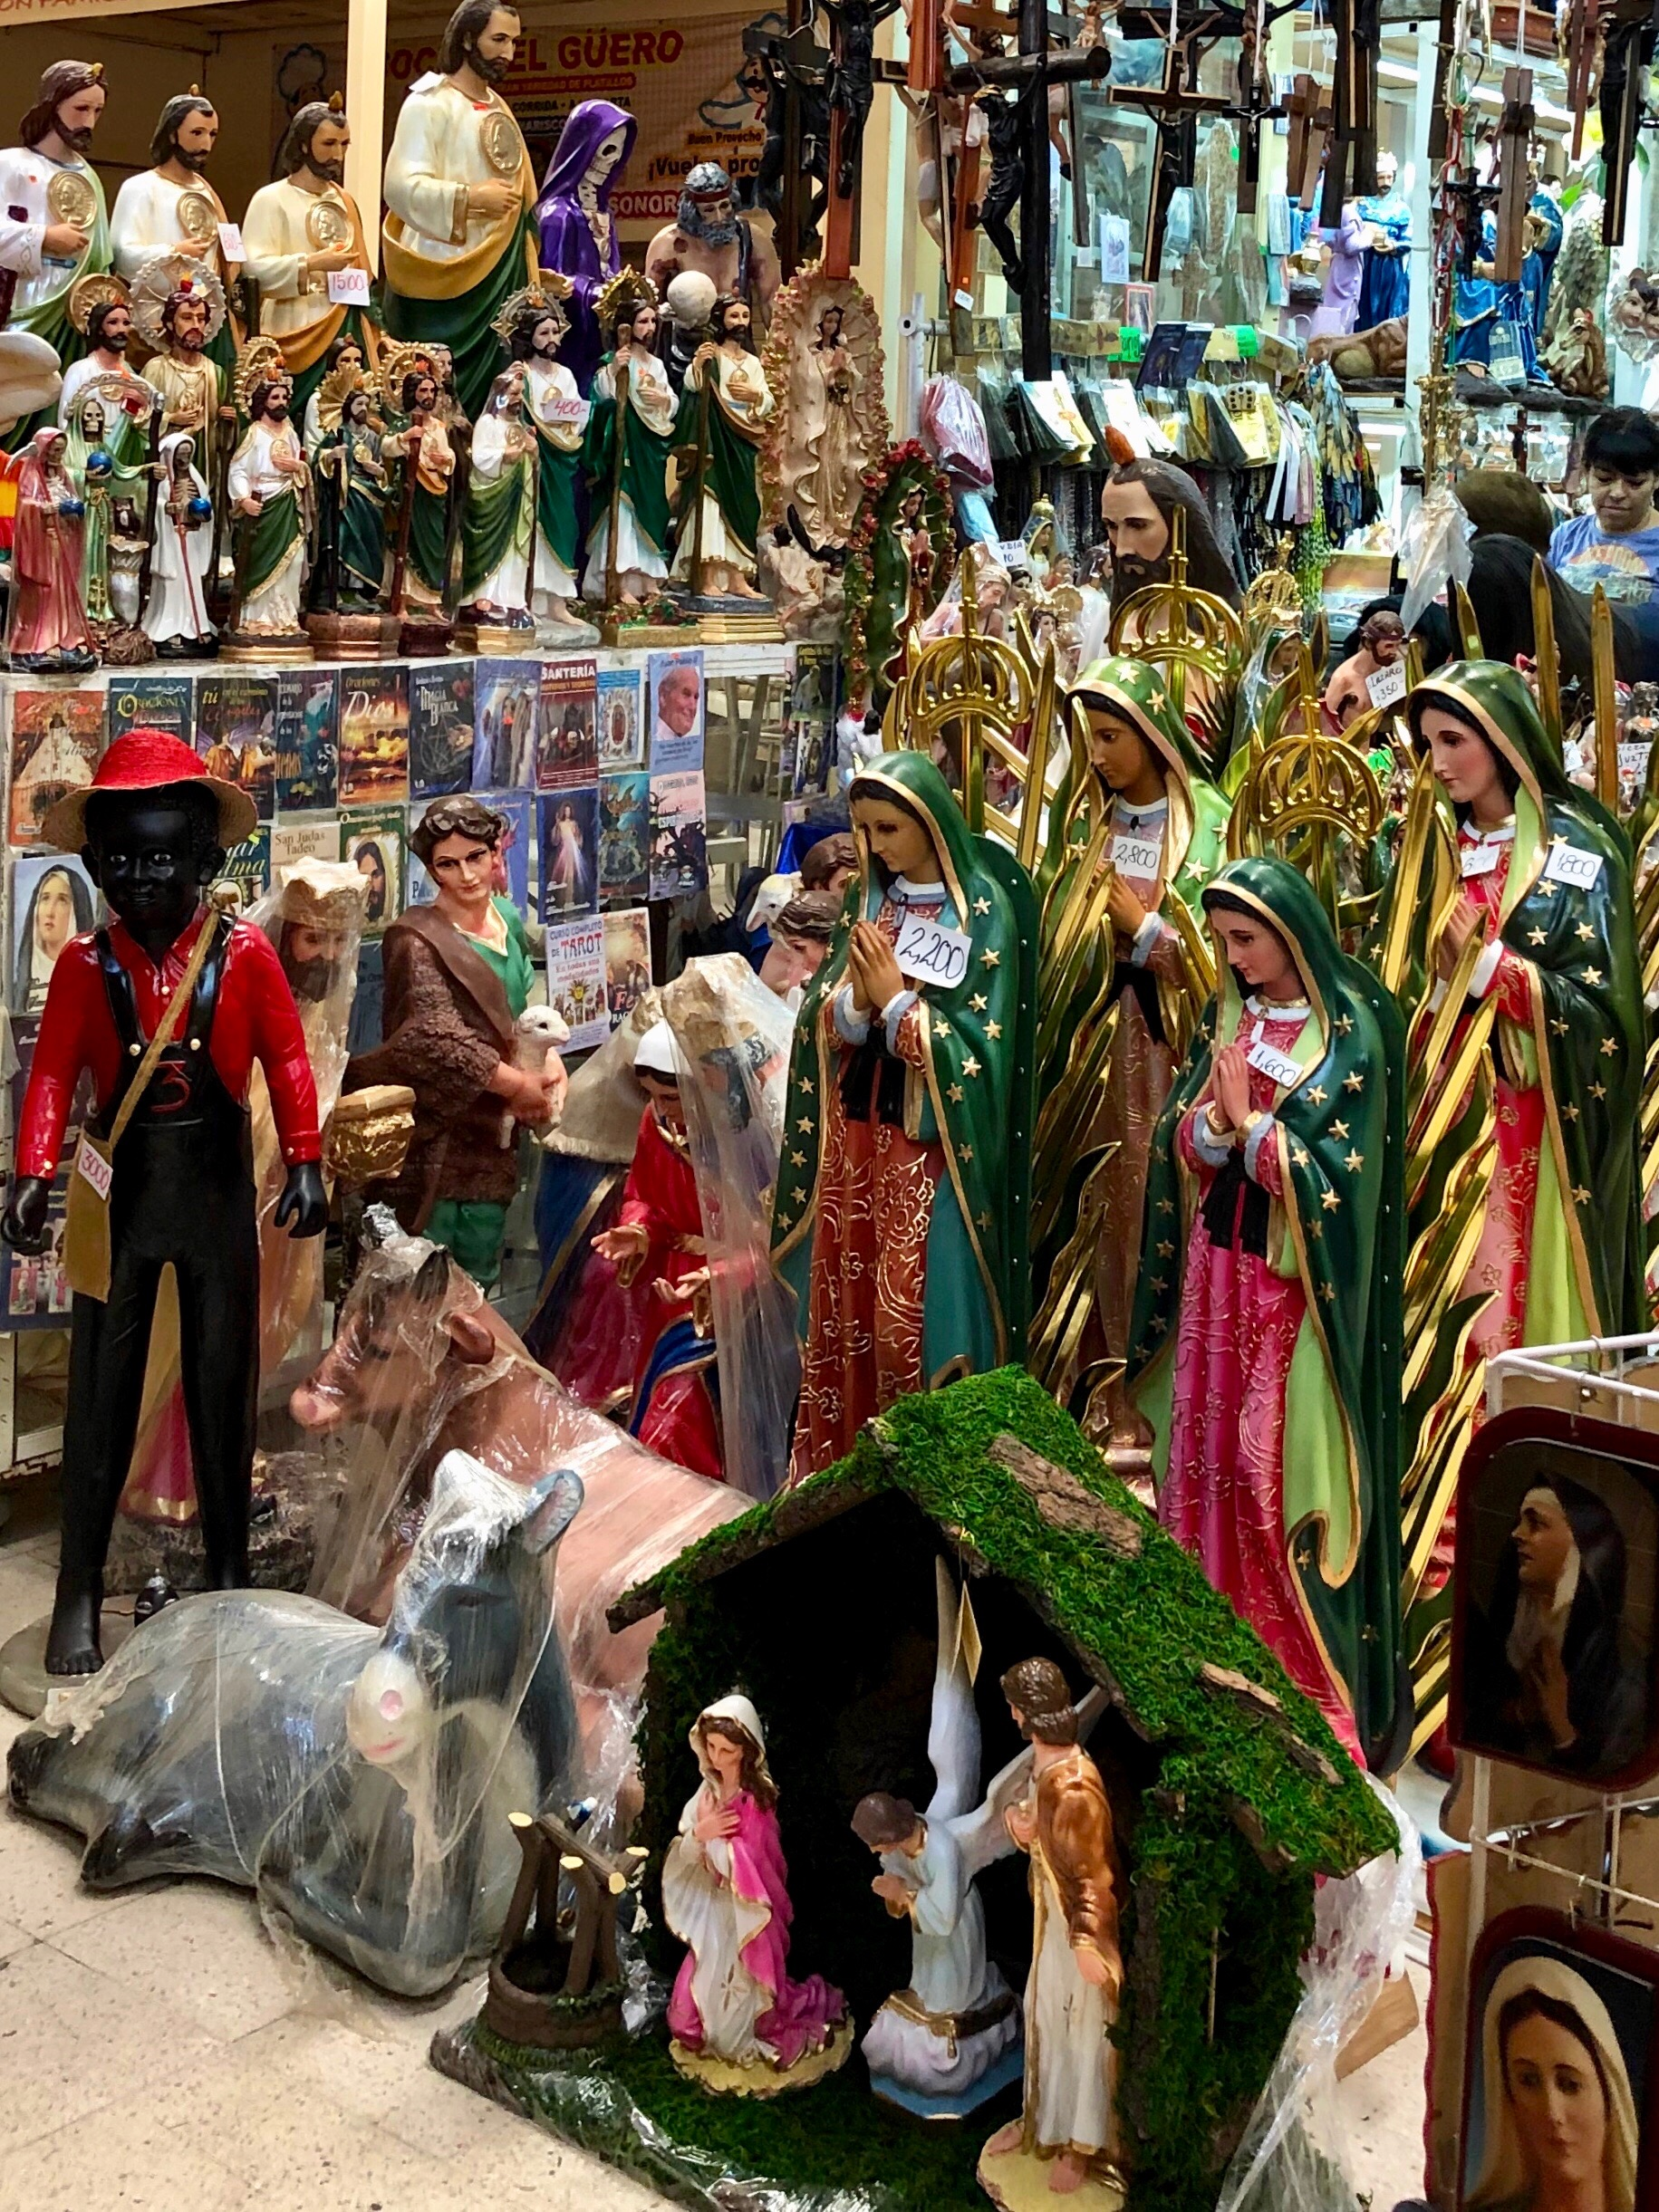 Stalls filled with Catholic icons are side by side with ones selling Santería and brujeria totems